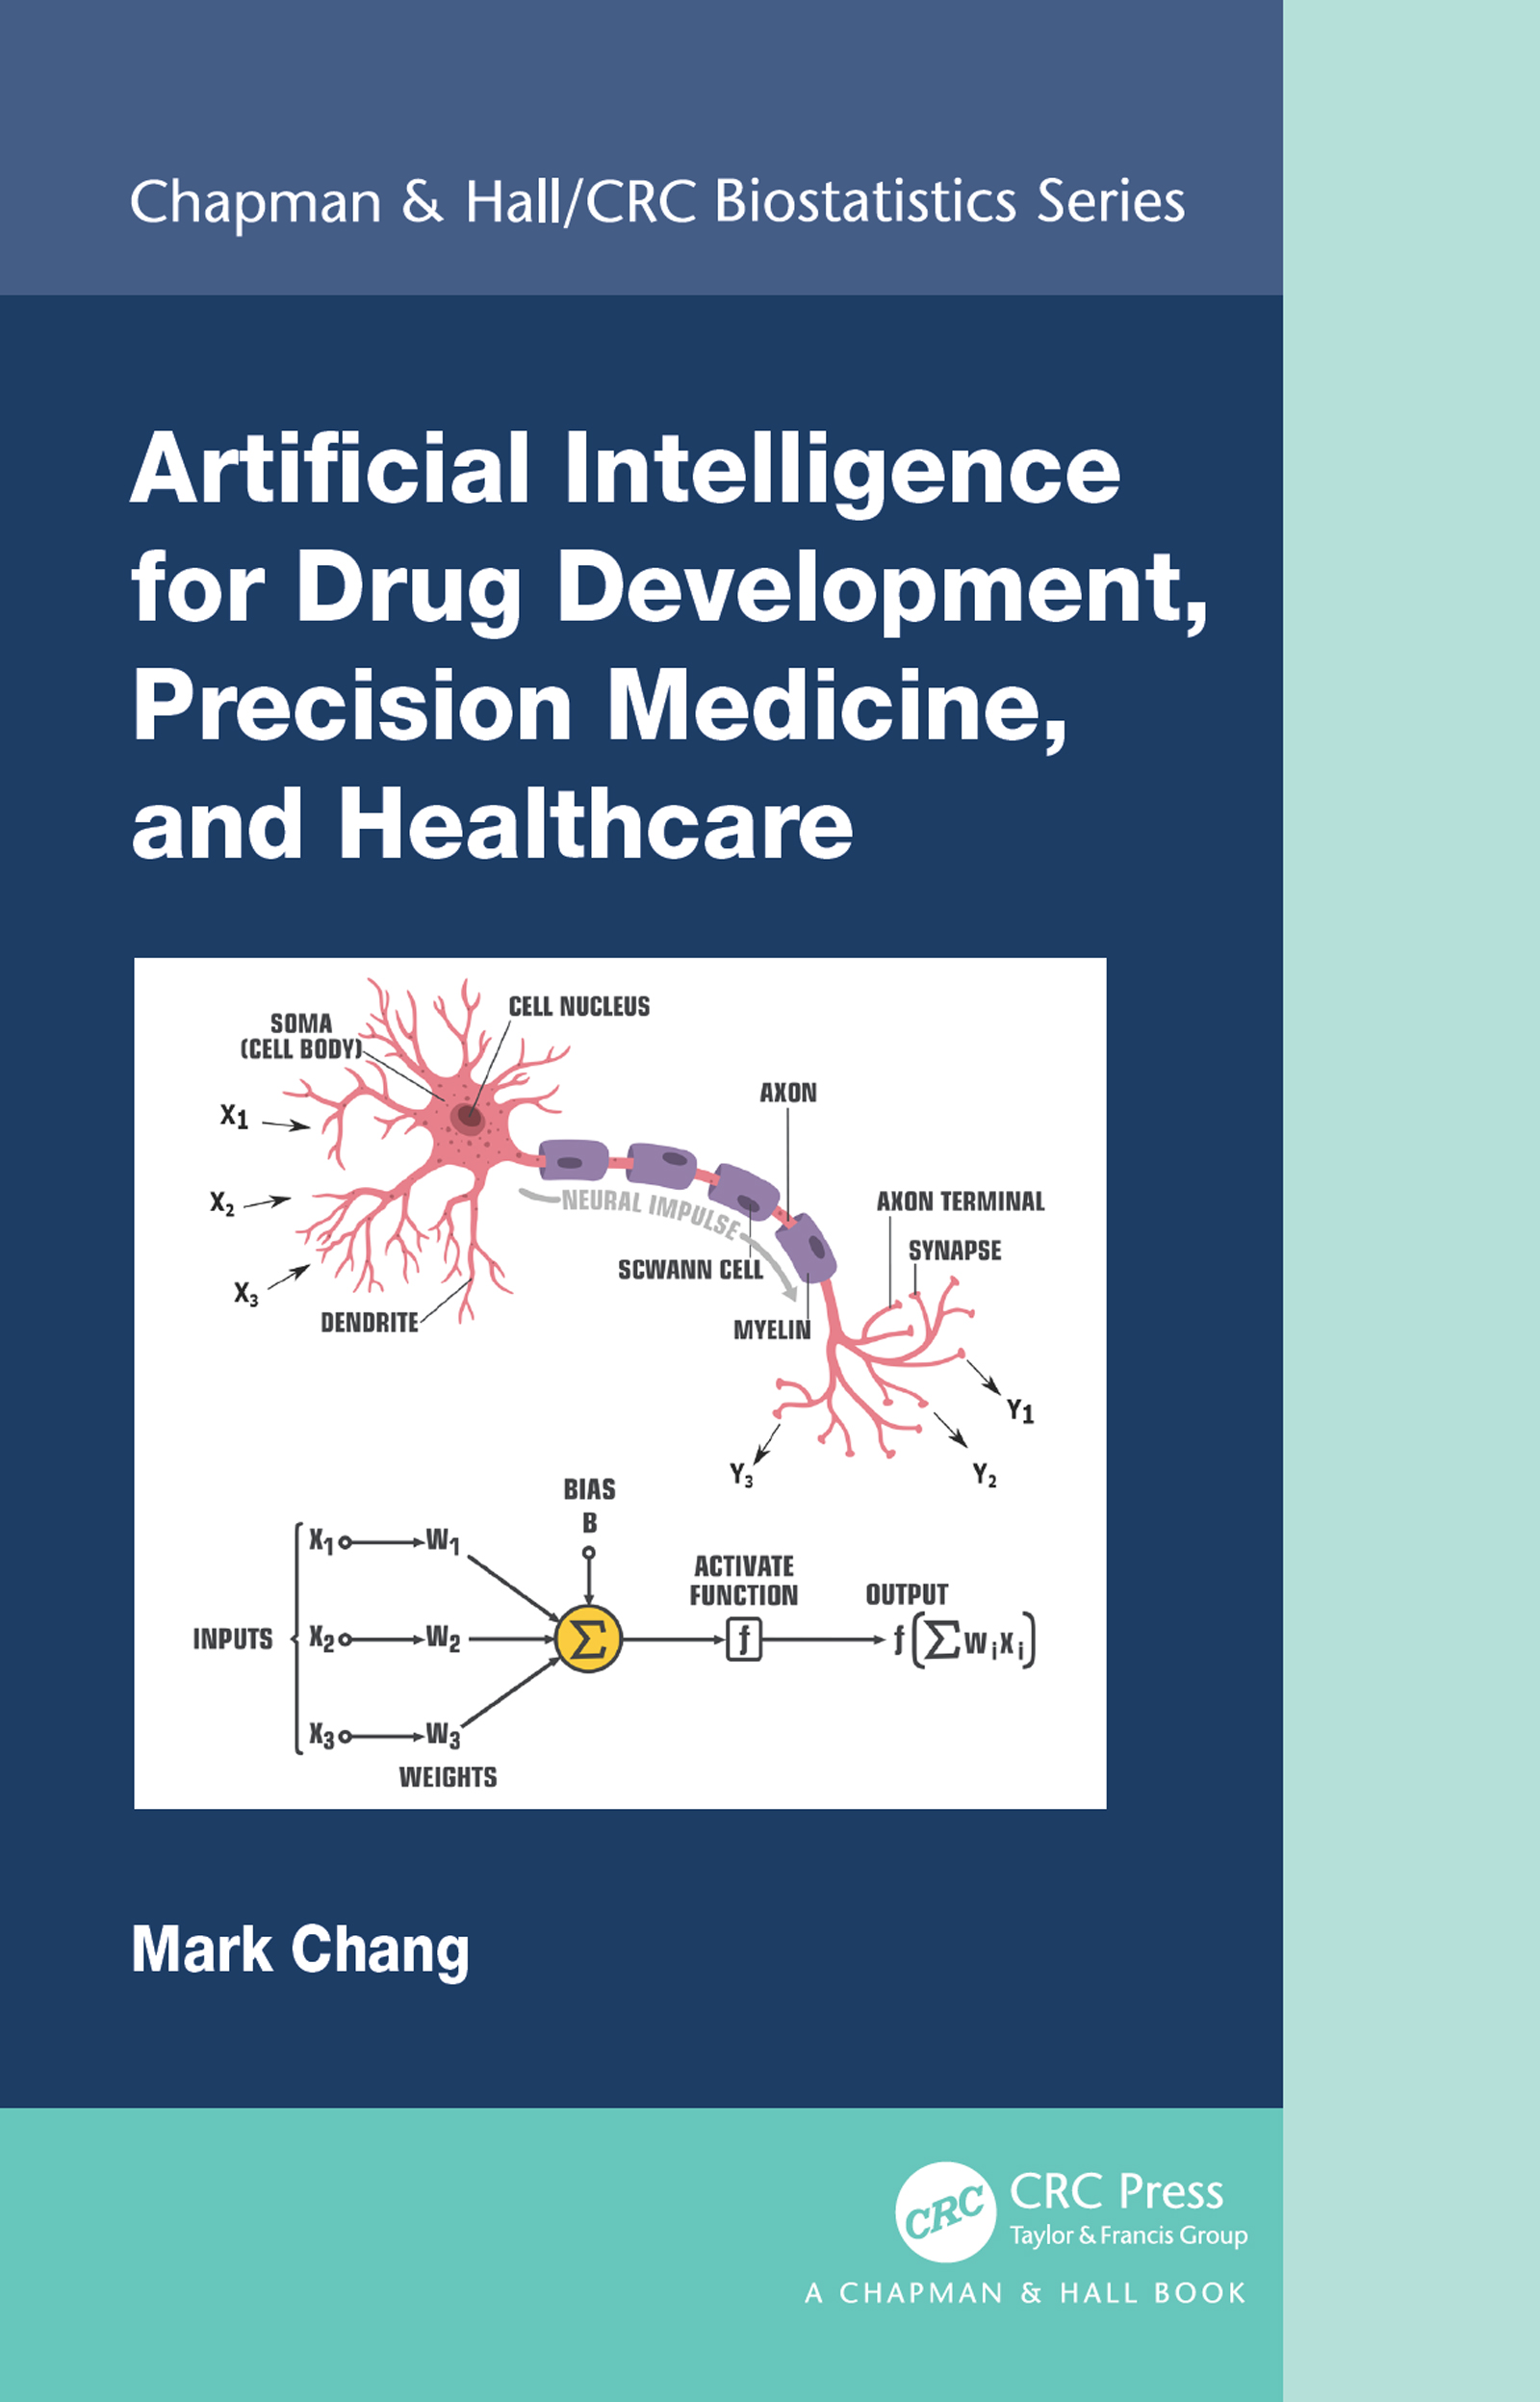 Artificial Intelligence for Drug Development, Precision Medicine, and Healthcare